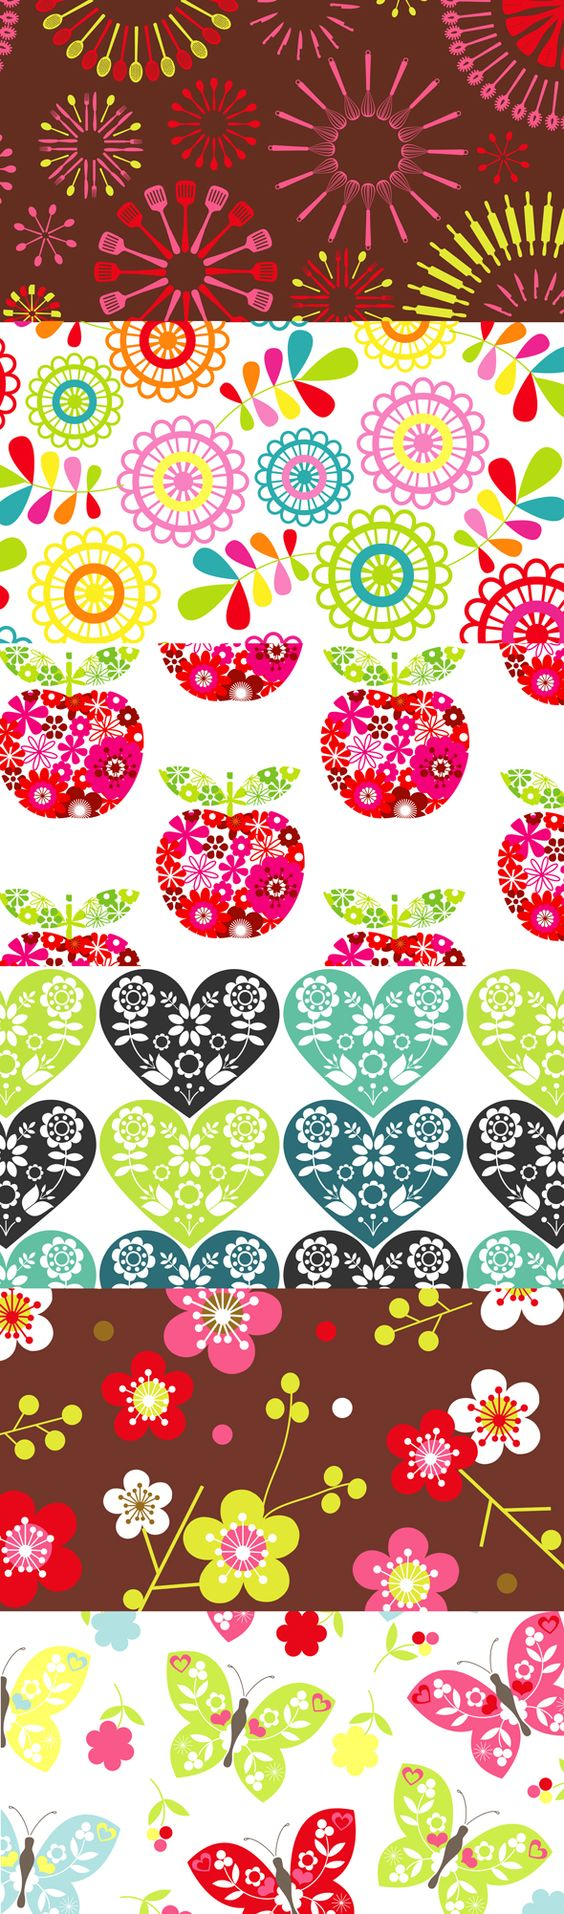 And more Marie Perkins' patterns!